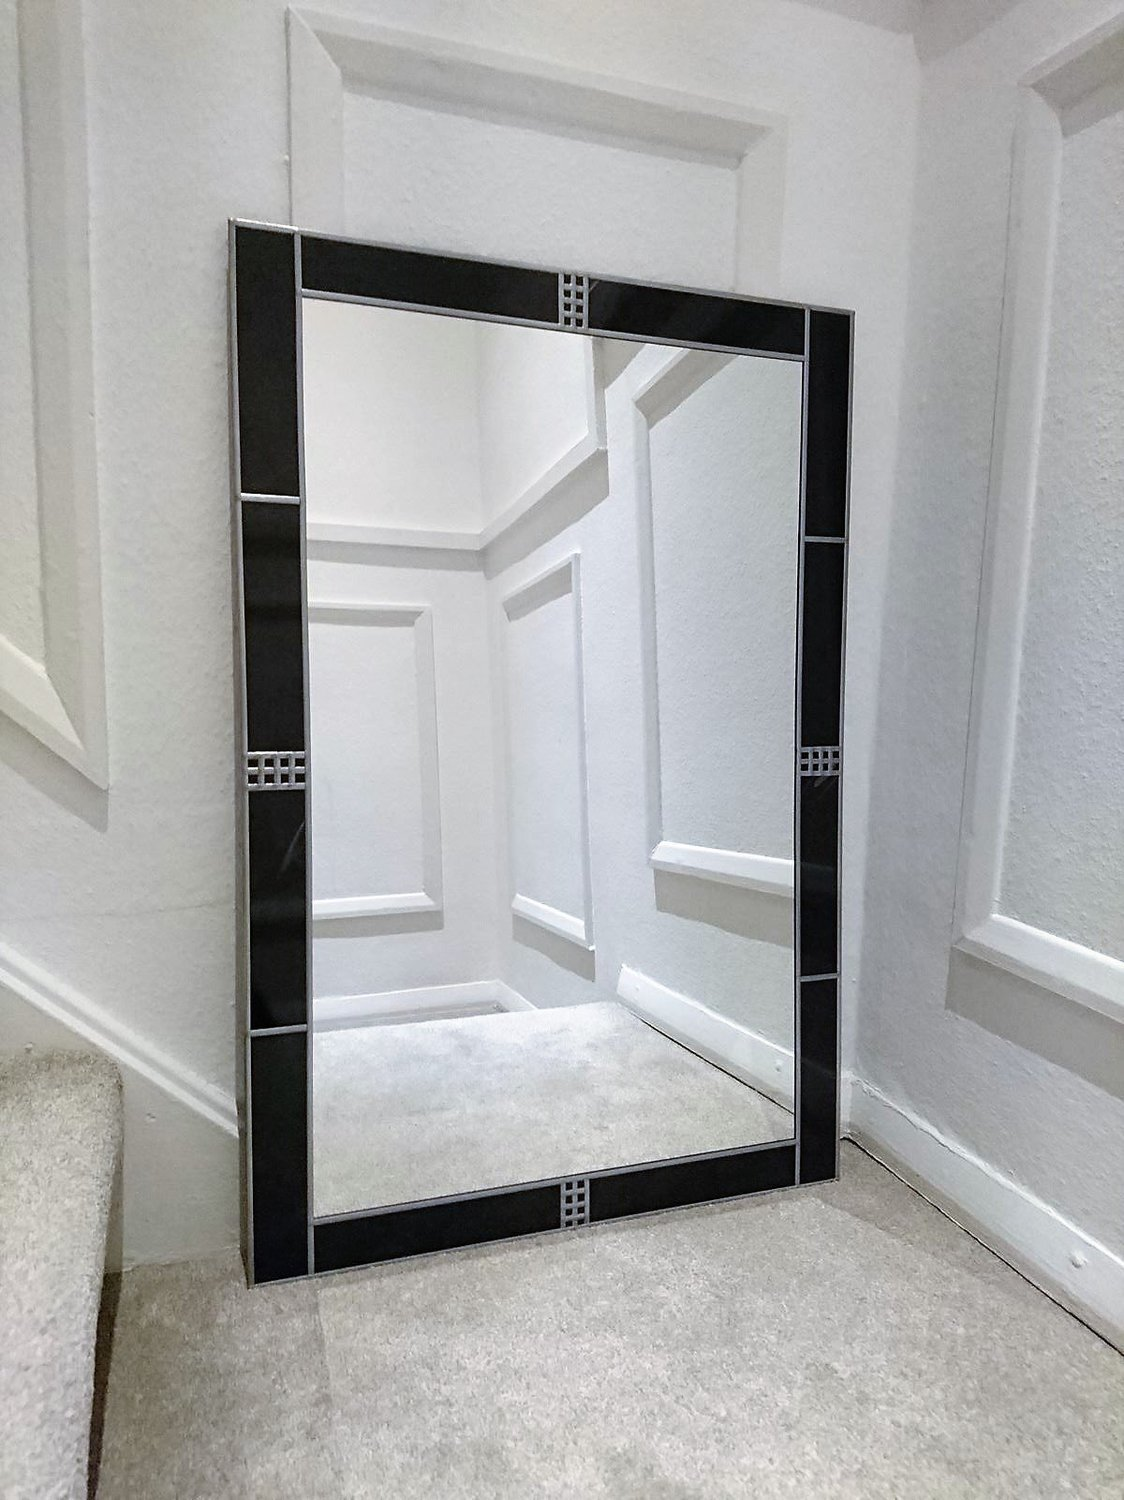 Art Deco Style Mirror Details About 91x61cm 2x3ft Black Frame Art Deco Large Wall Mirror Handmade In The Uk